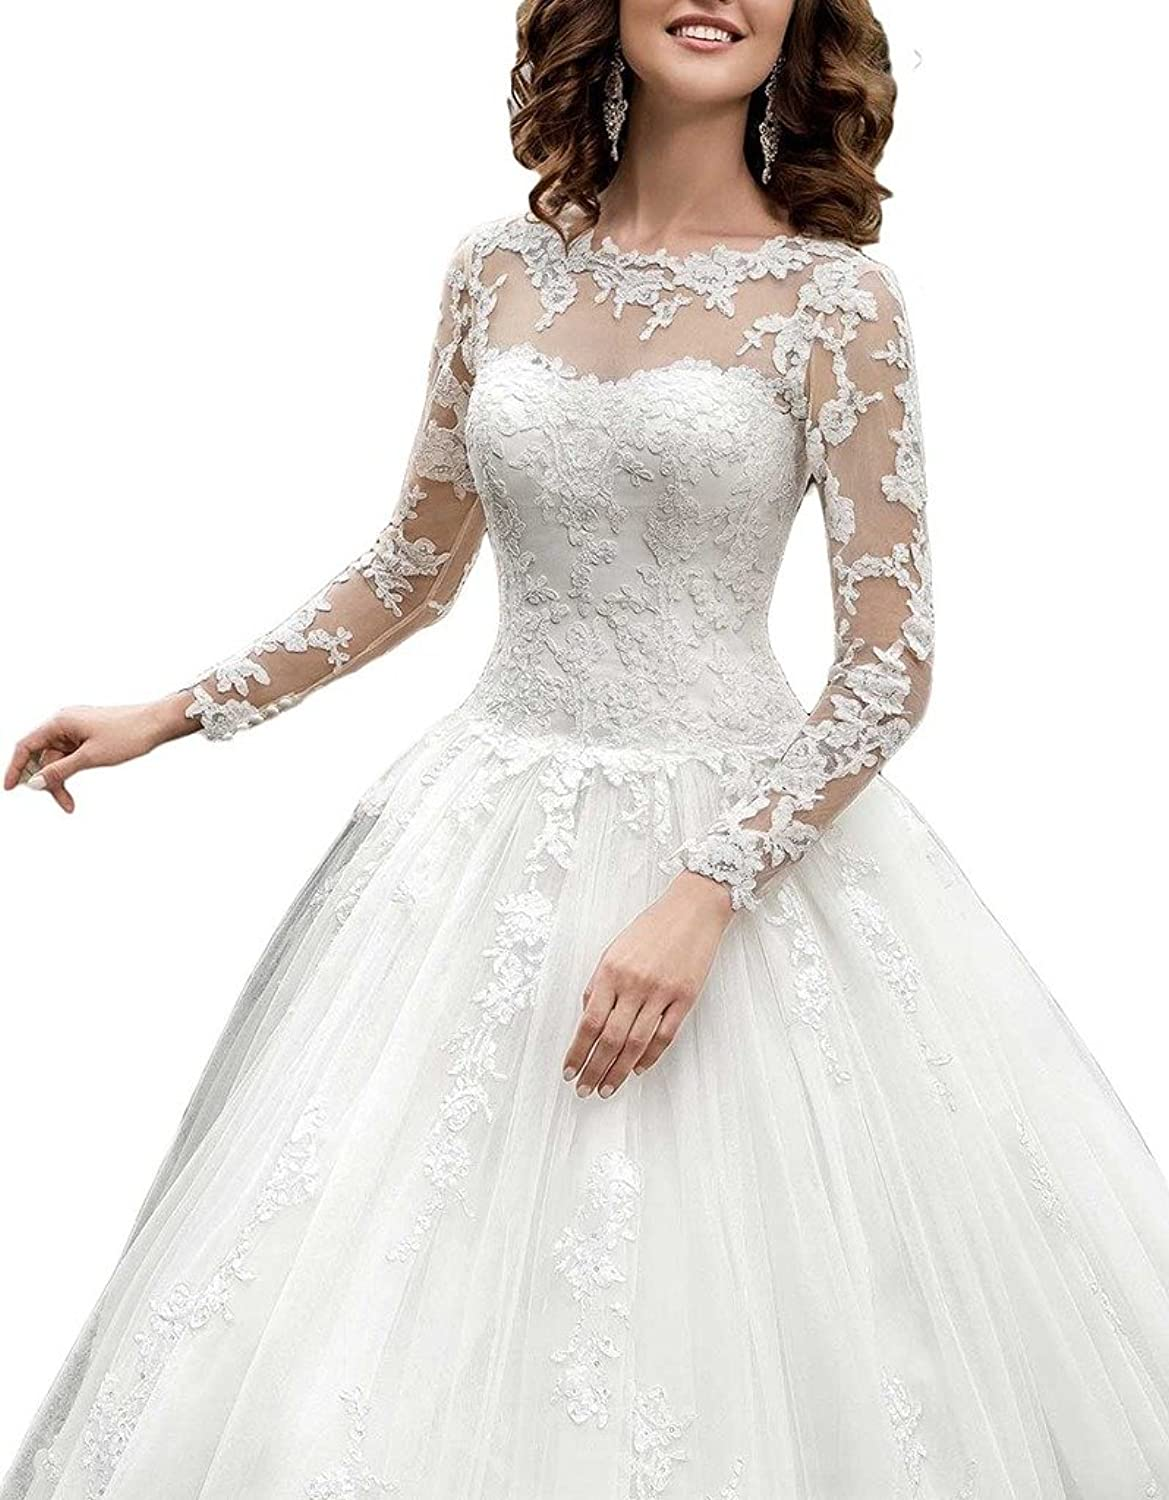 Cardol Women\'s 2017 Long Sleeves Lace Ball Gown Wedding Dresses for ...